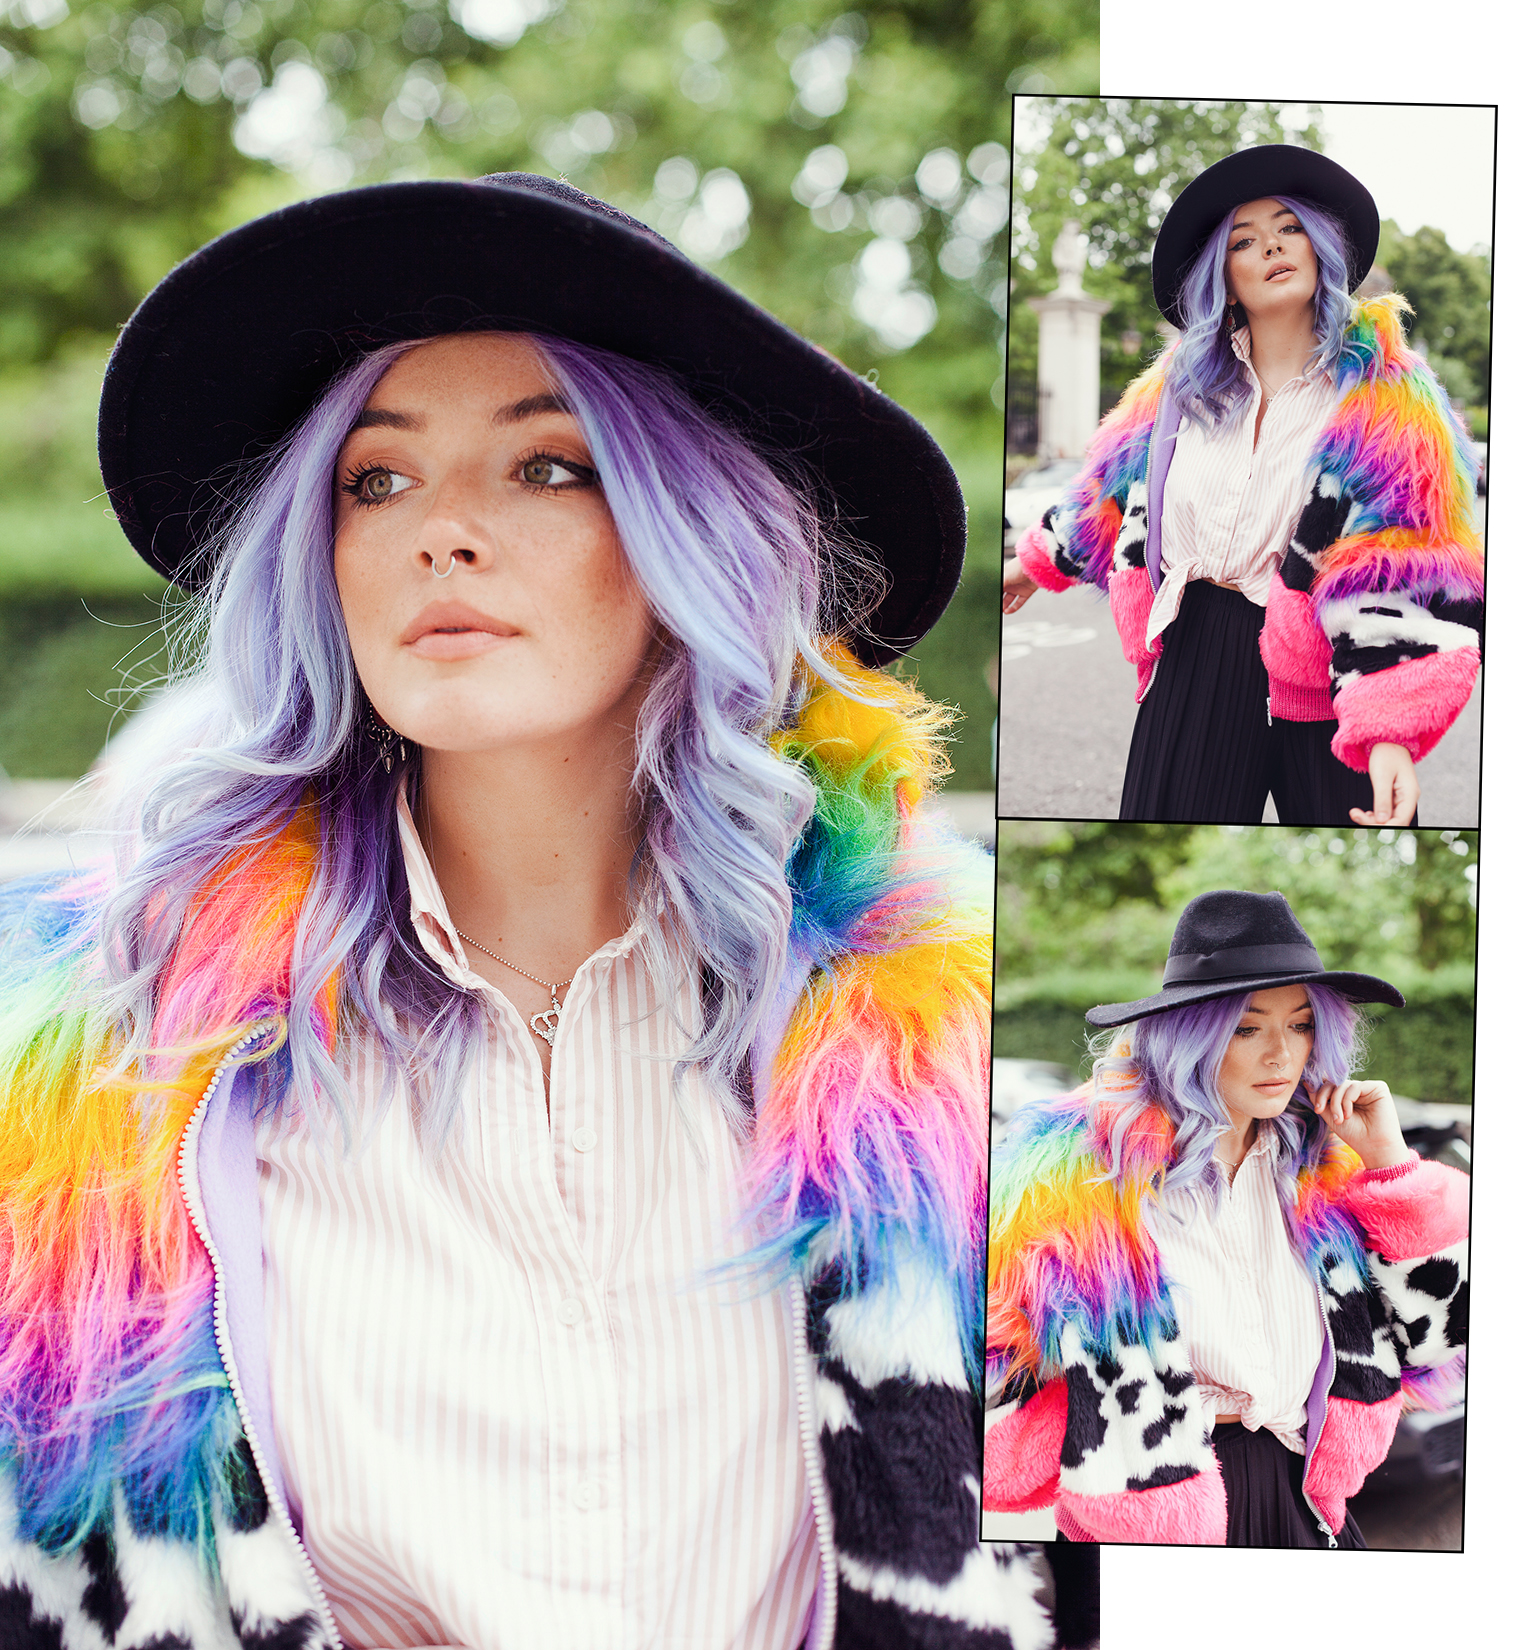 pastel hair blogger fashion photoshoot with Georgie Philippa by Ailera Stone